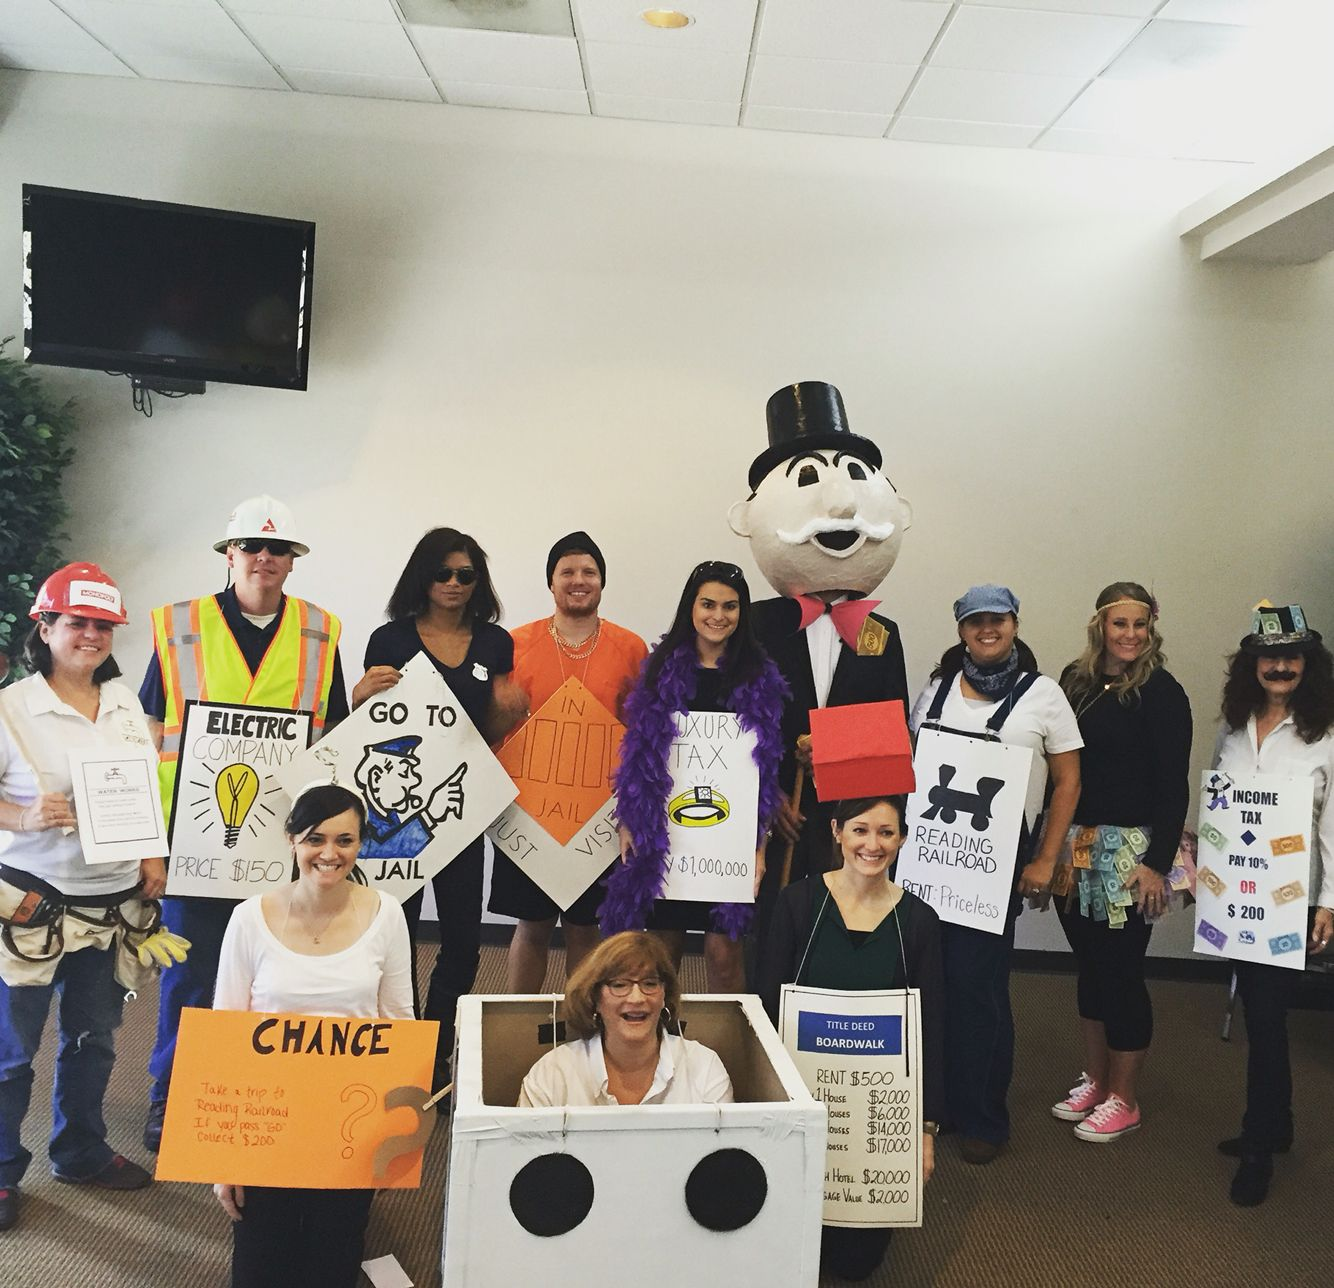 Monopoly costumes for the whole sales team! in 2019